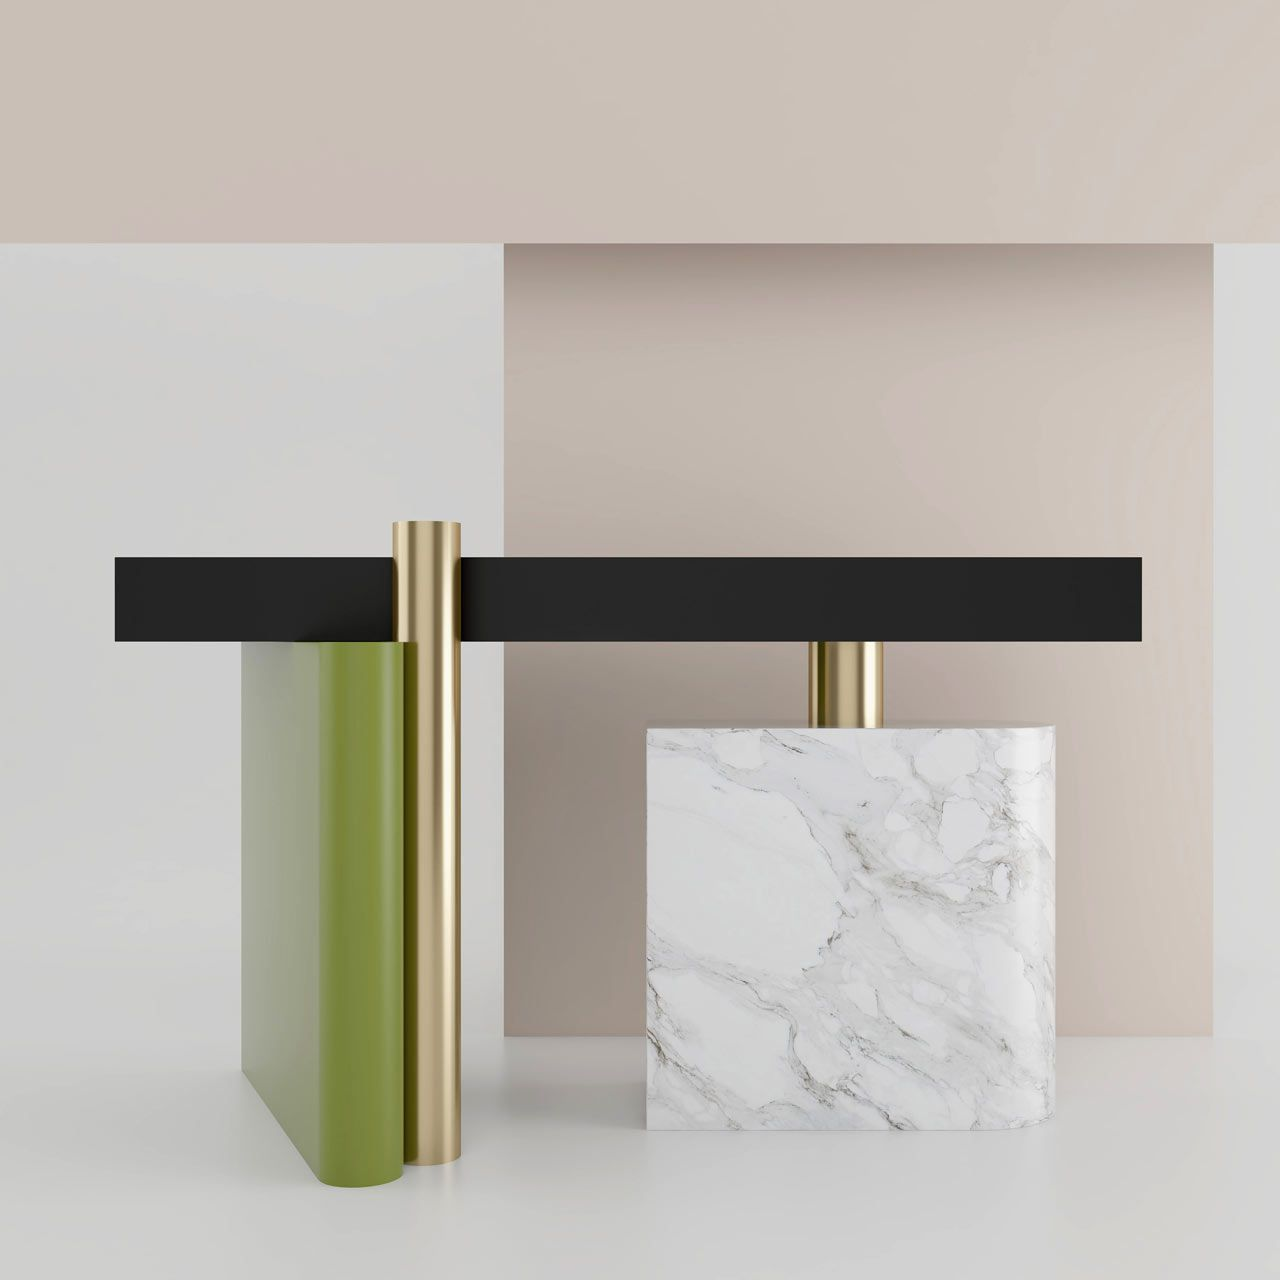 Meuble Console Moderne The Best In Design A Design Award Competition 2018 Winners